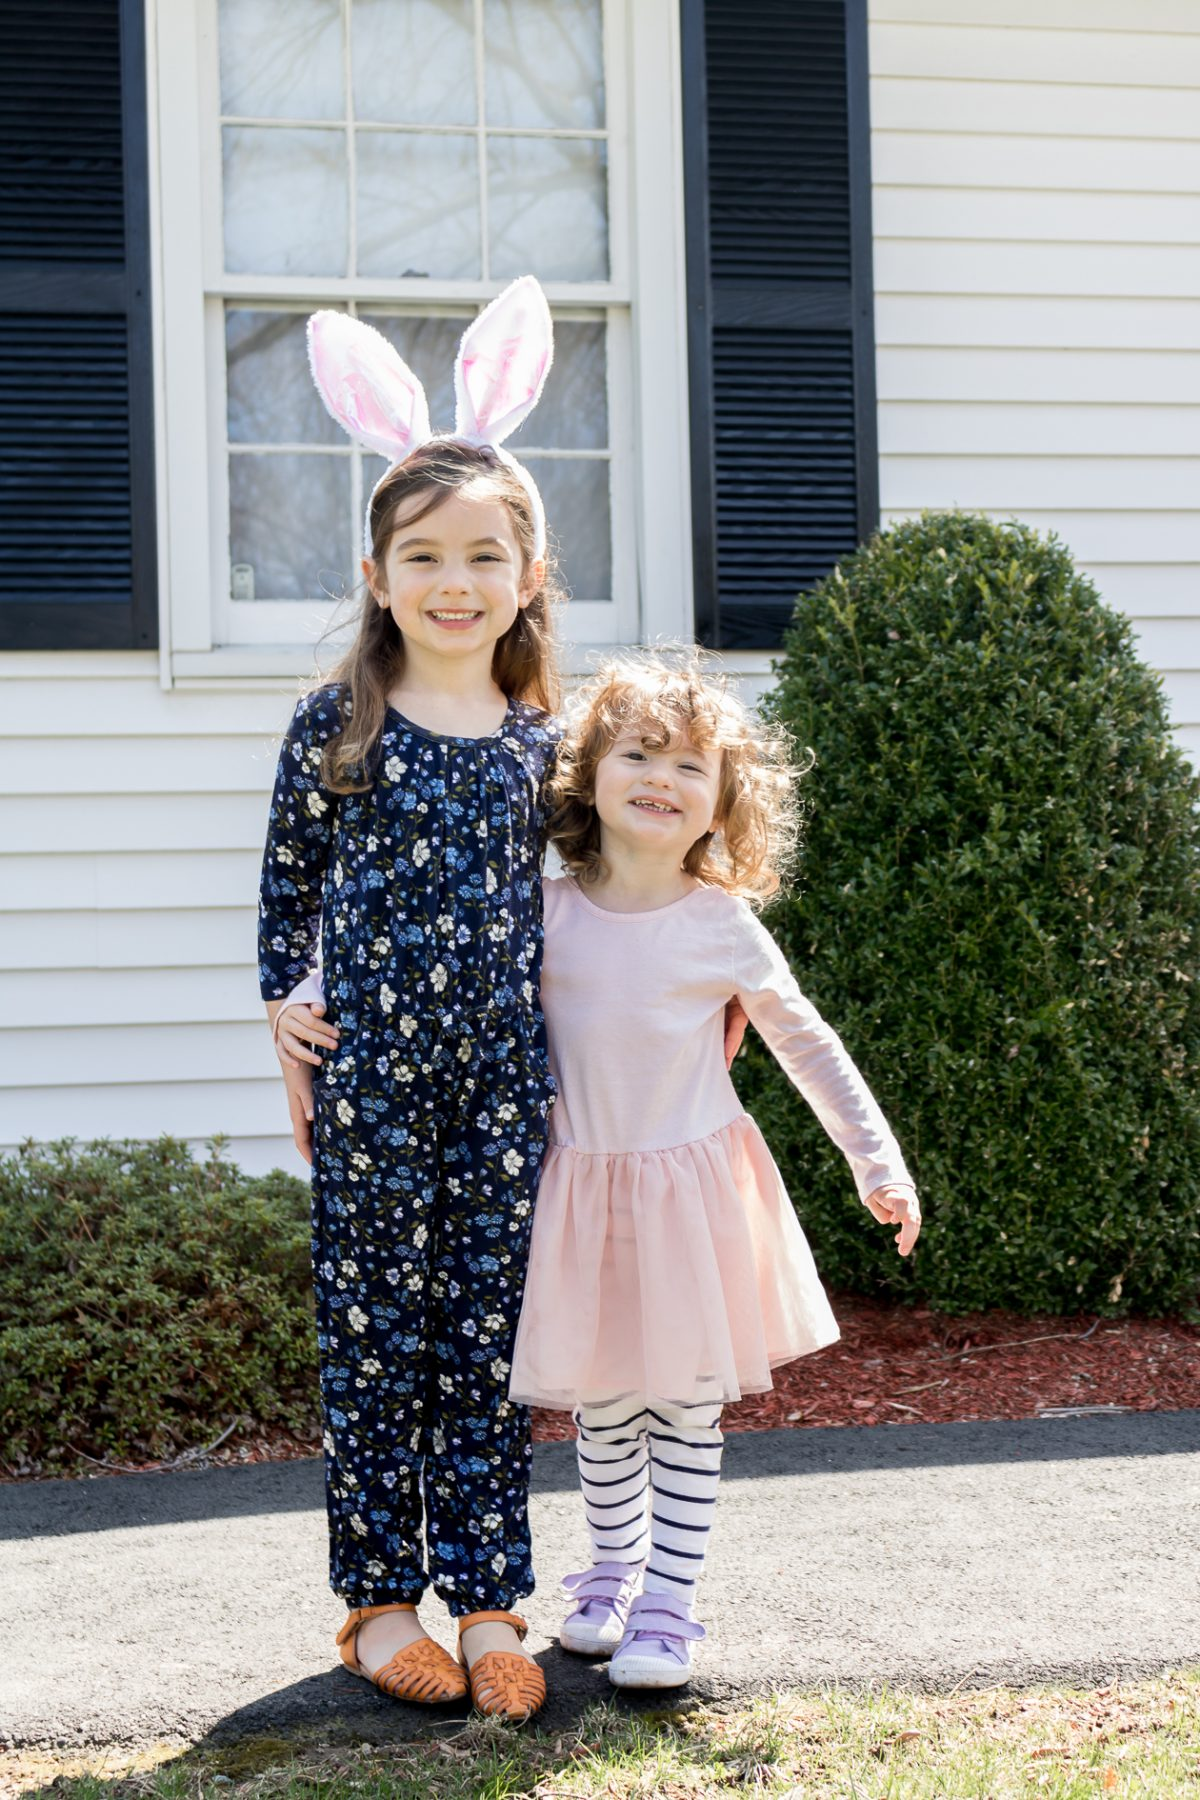 Little girl wearing blue jumpsuit and bunny ears and another little girl with curly hair wearing a pink dress and blue striped pants